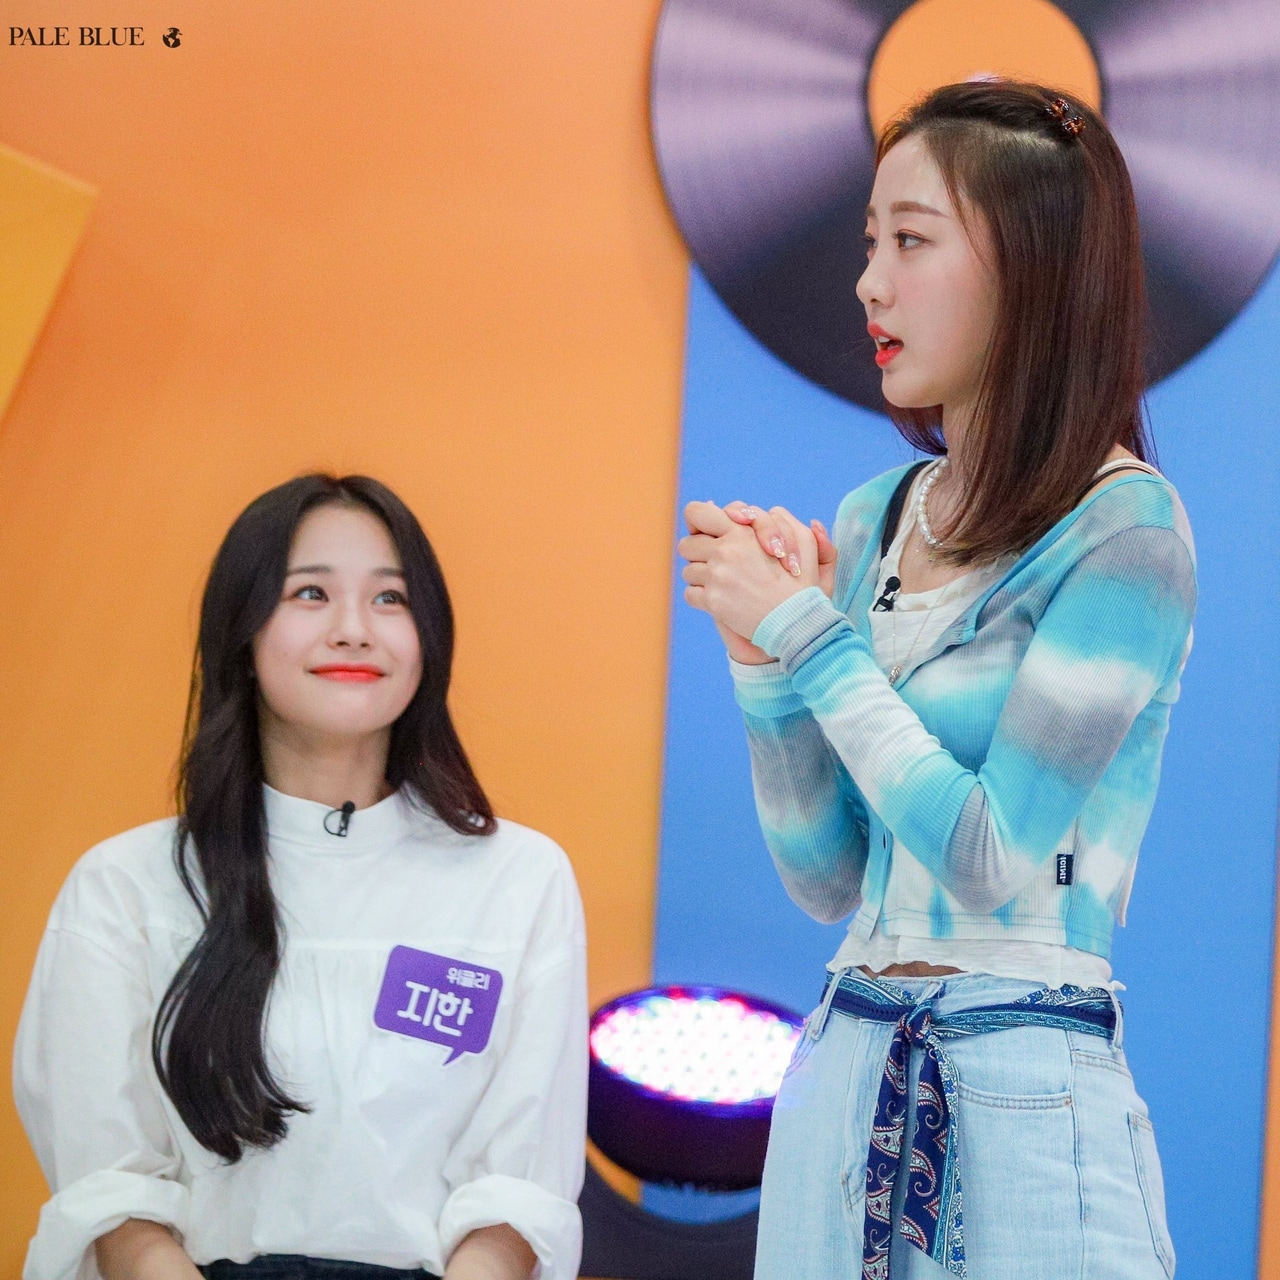 article and loona image